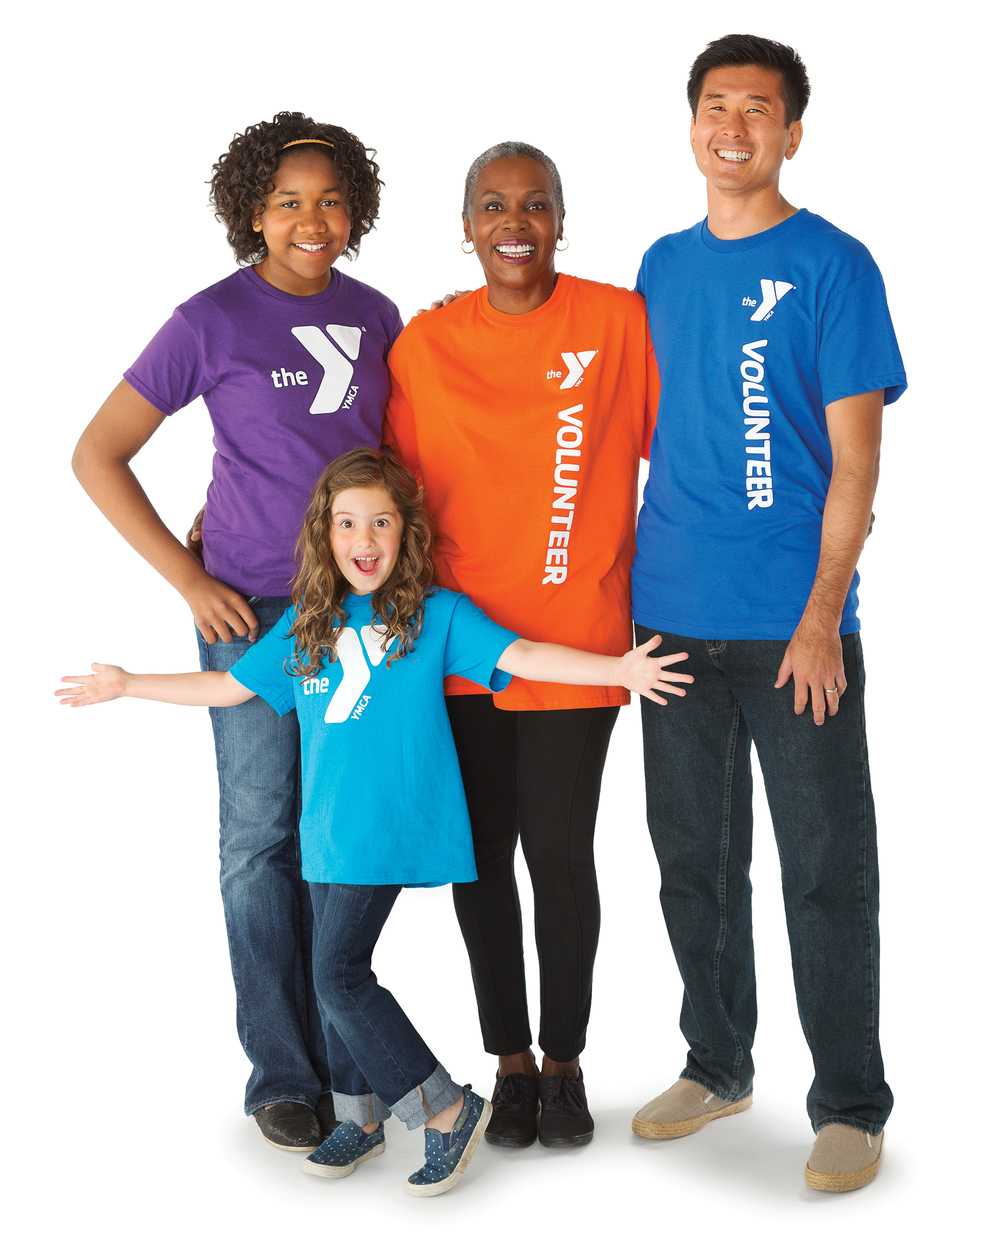 Volunteer With the YMCA!